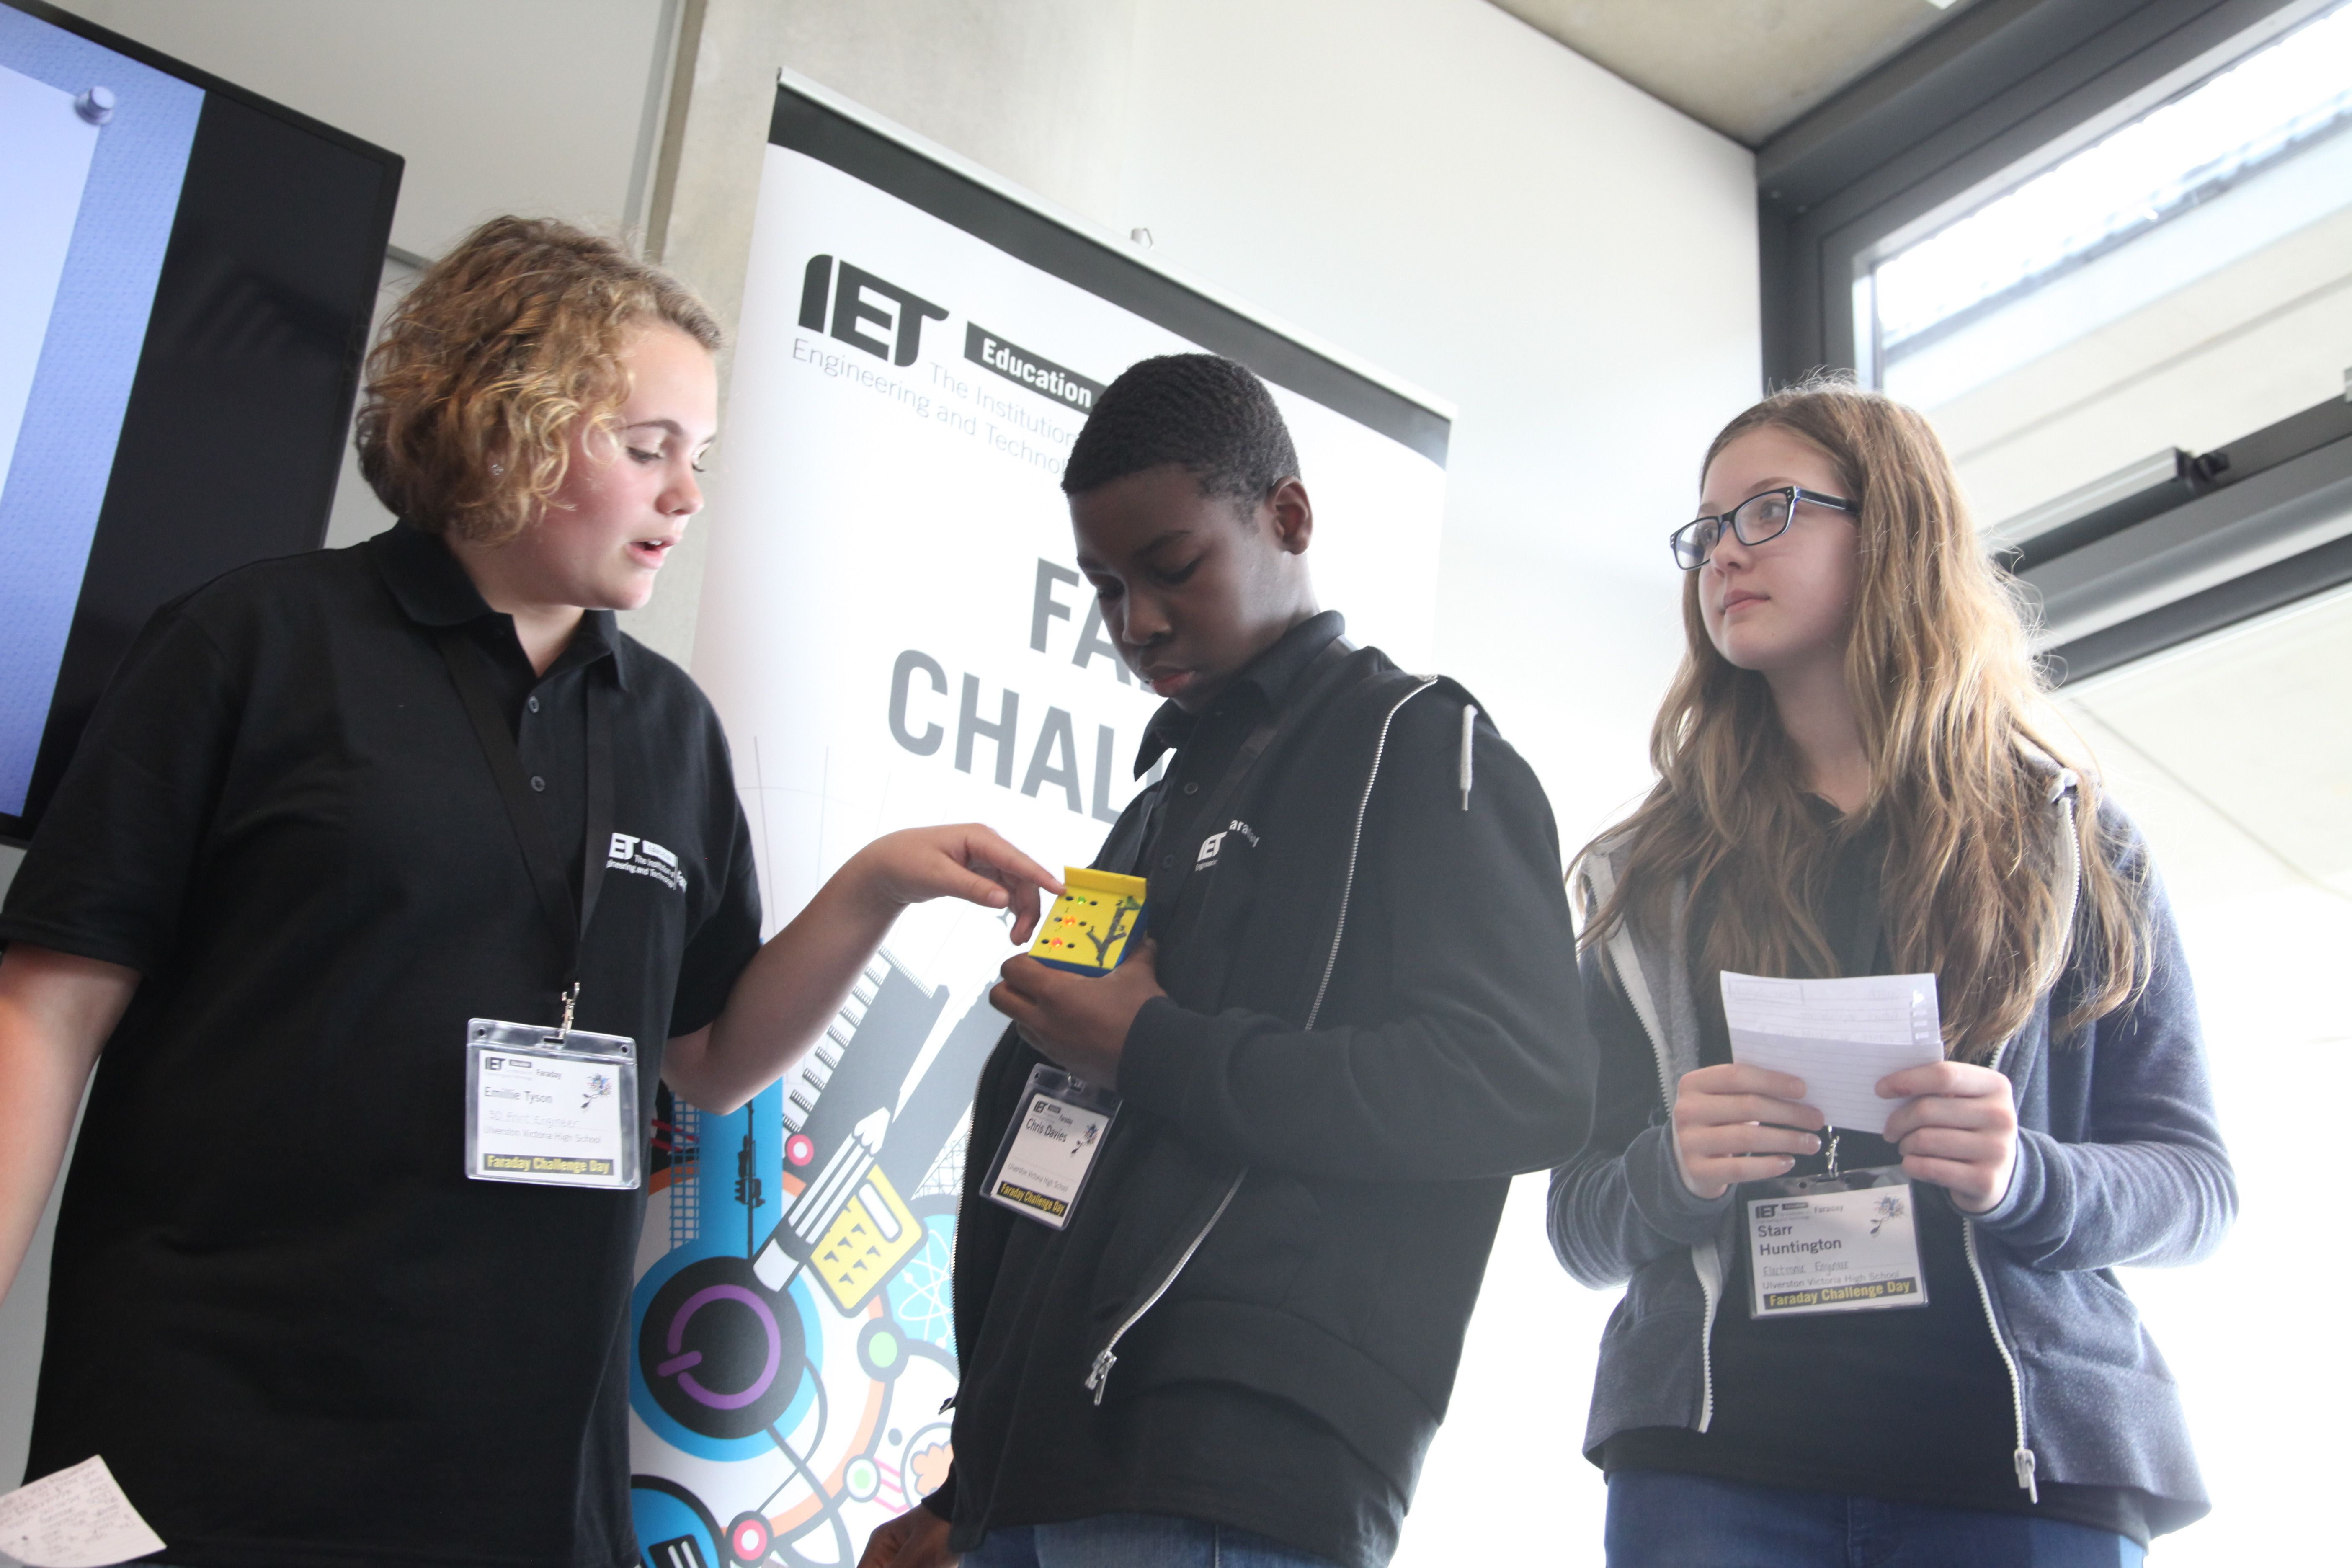 Presentation time for our teams. http://faraday.theiet.org/stem-activity-days/faraday-challenge-days/faraday_challenge_days_2014_15.cfm